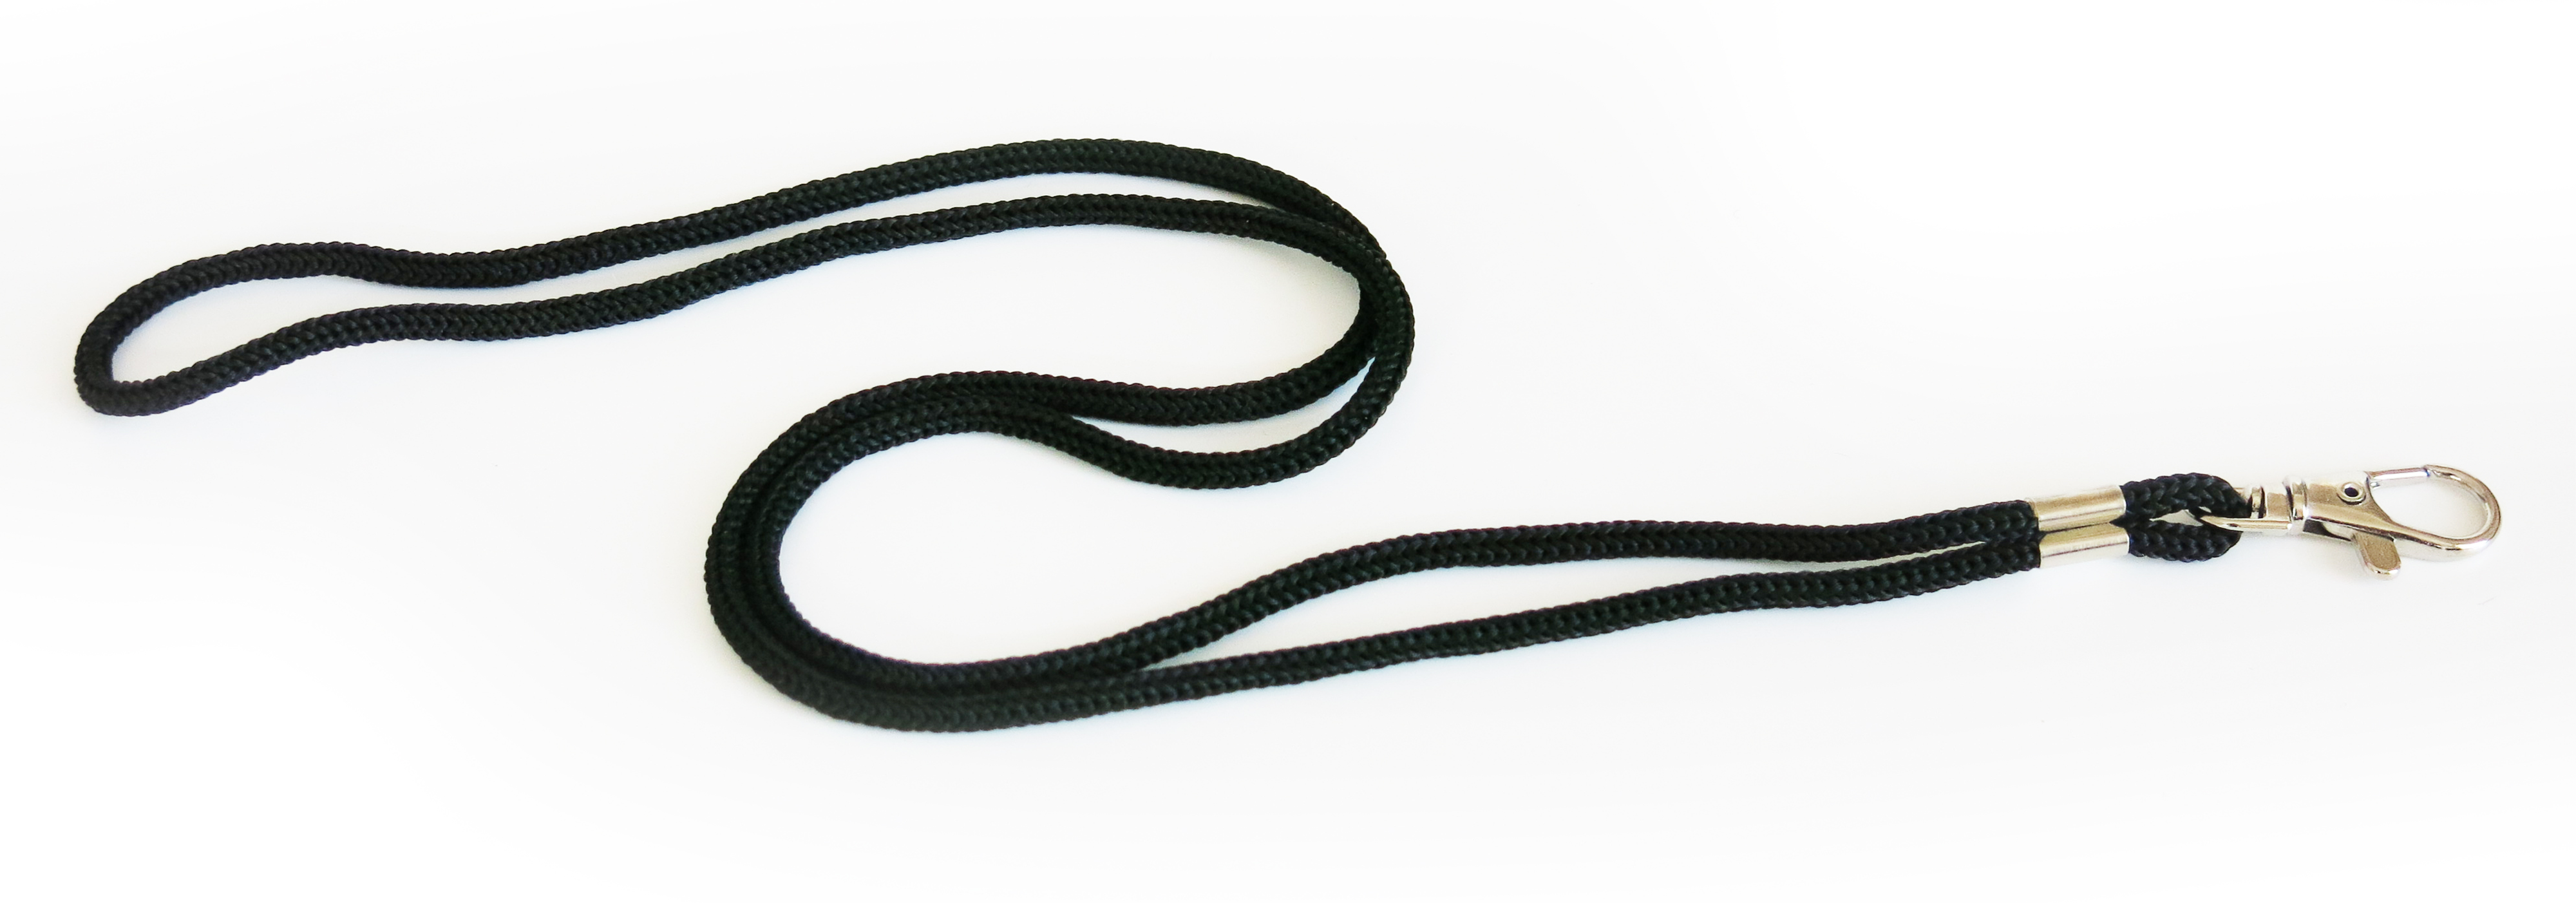 Cord Lanyard with Clip